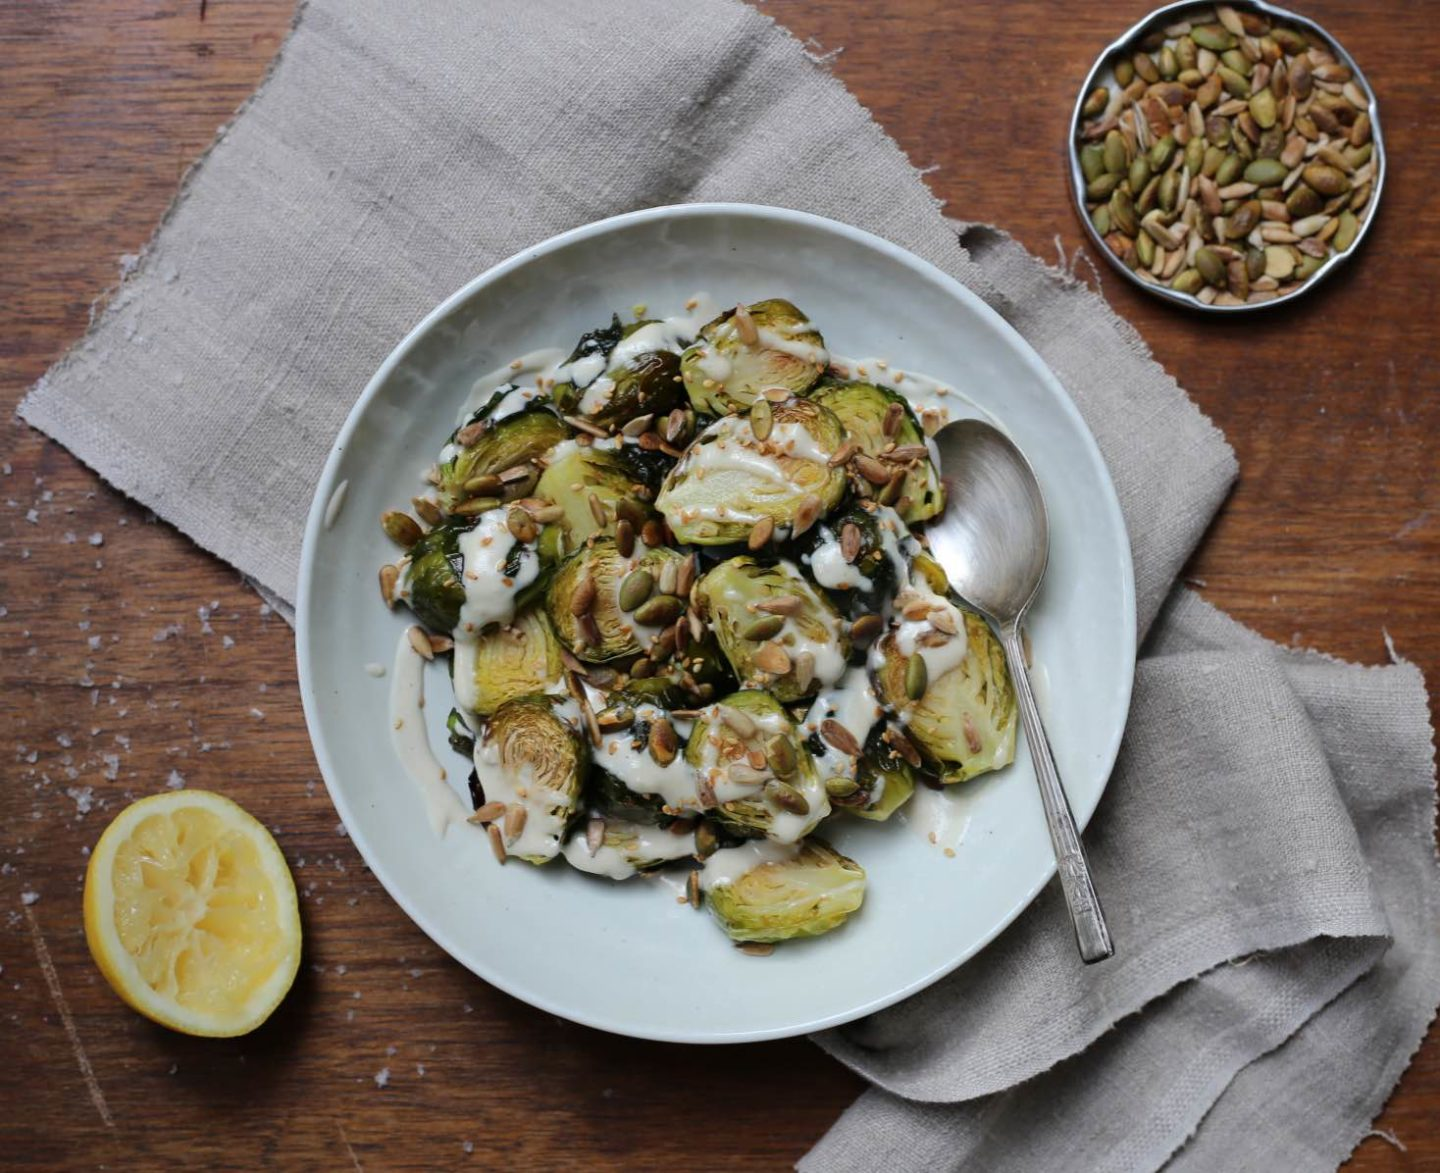 Roasted Brussels sprouts with tahini and toasted seeds